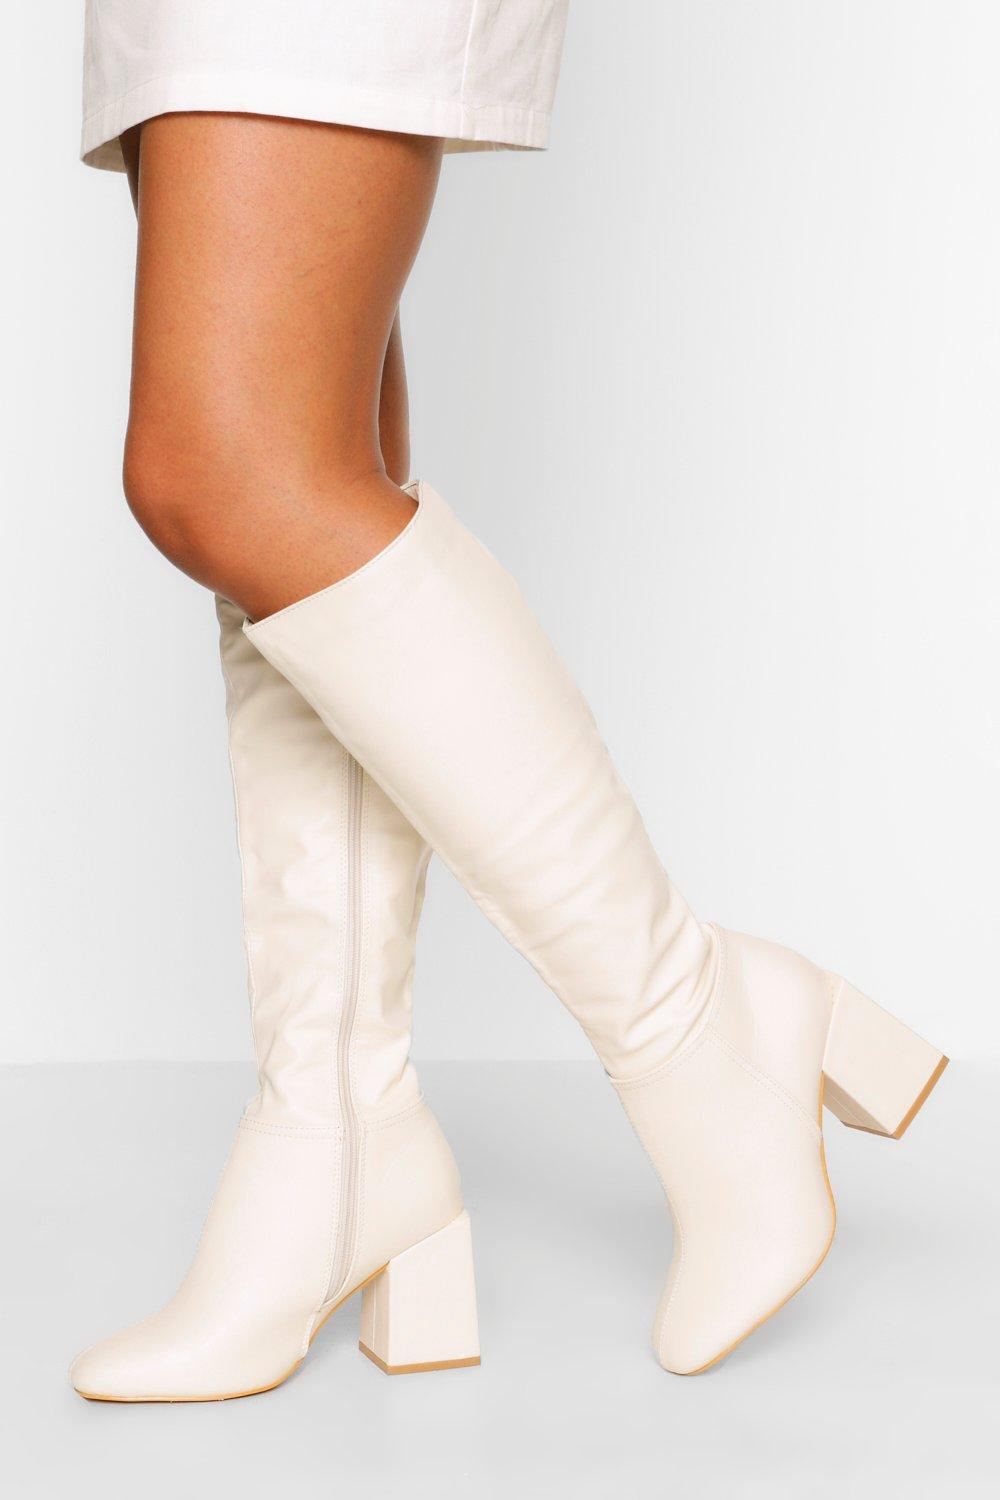 Vintage Boots- Buy Winter Retro Boots Womens Wide Fit Block Heel Knee High Boot - White - 10 $45.00 AT vintagedancer.com